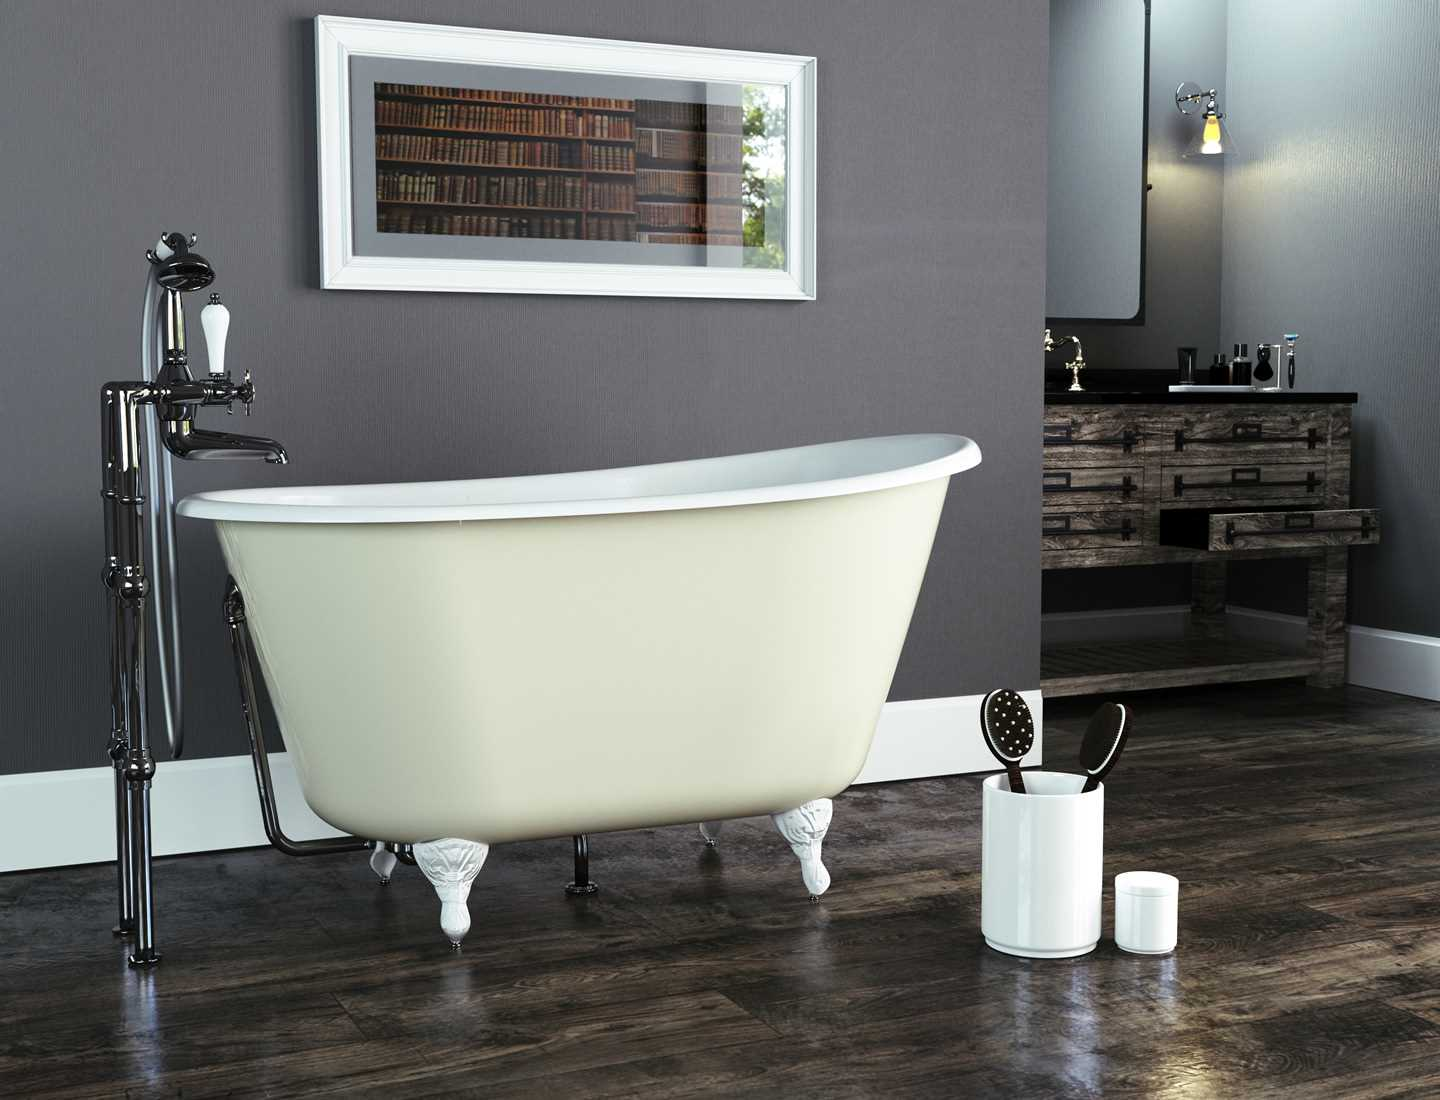 Lorenzo cast iron bath painted with white feet